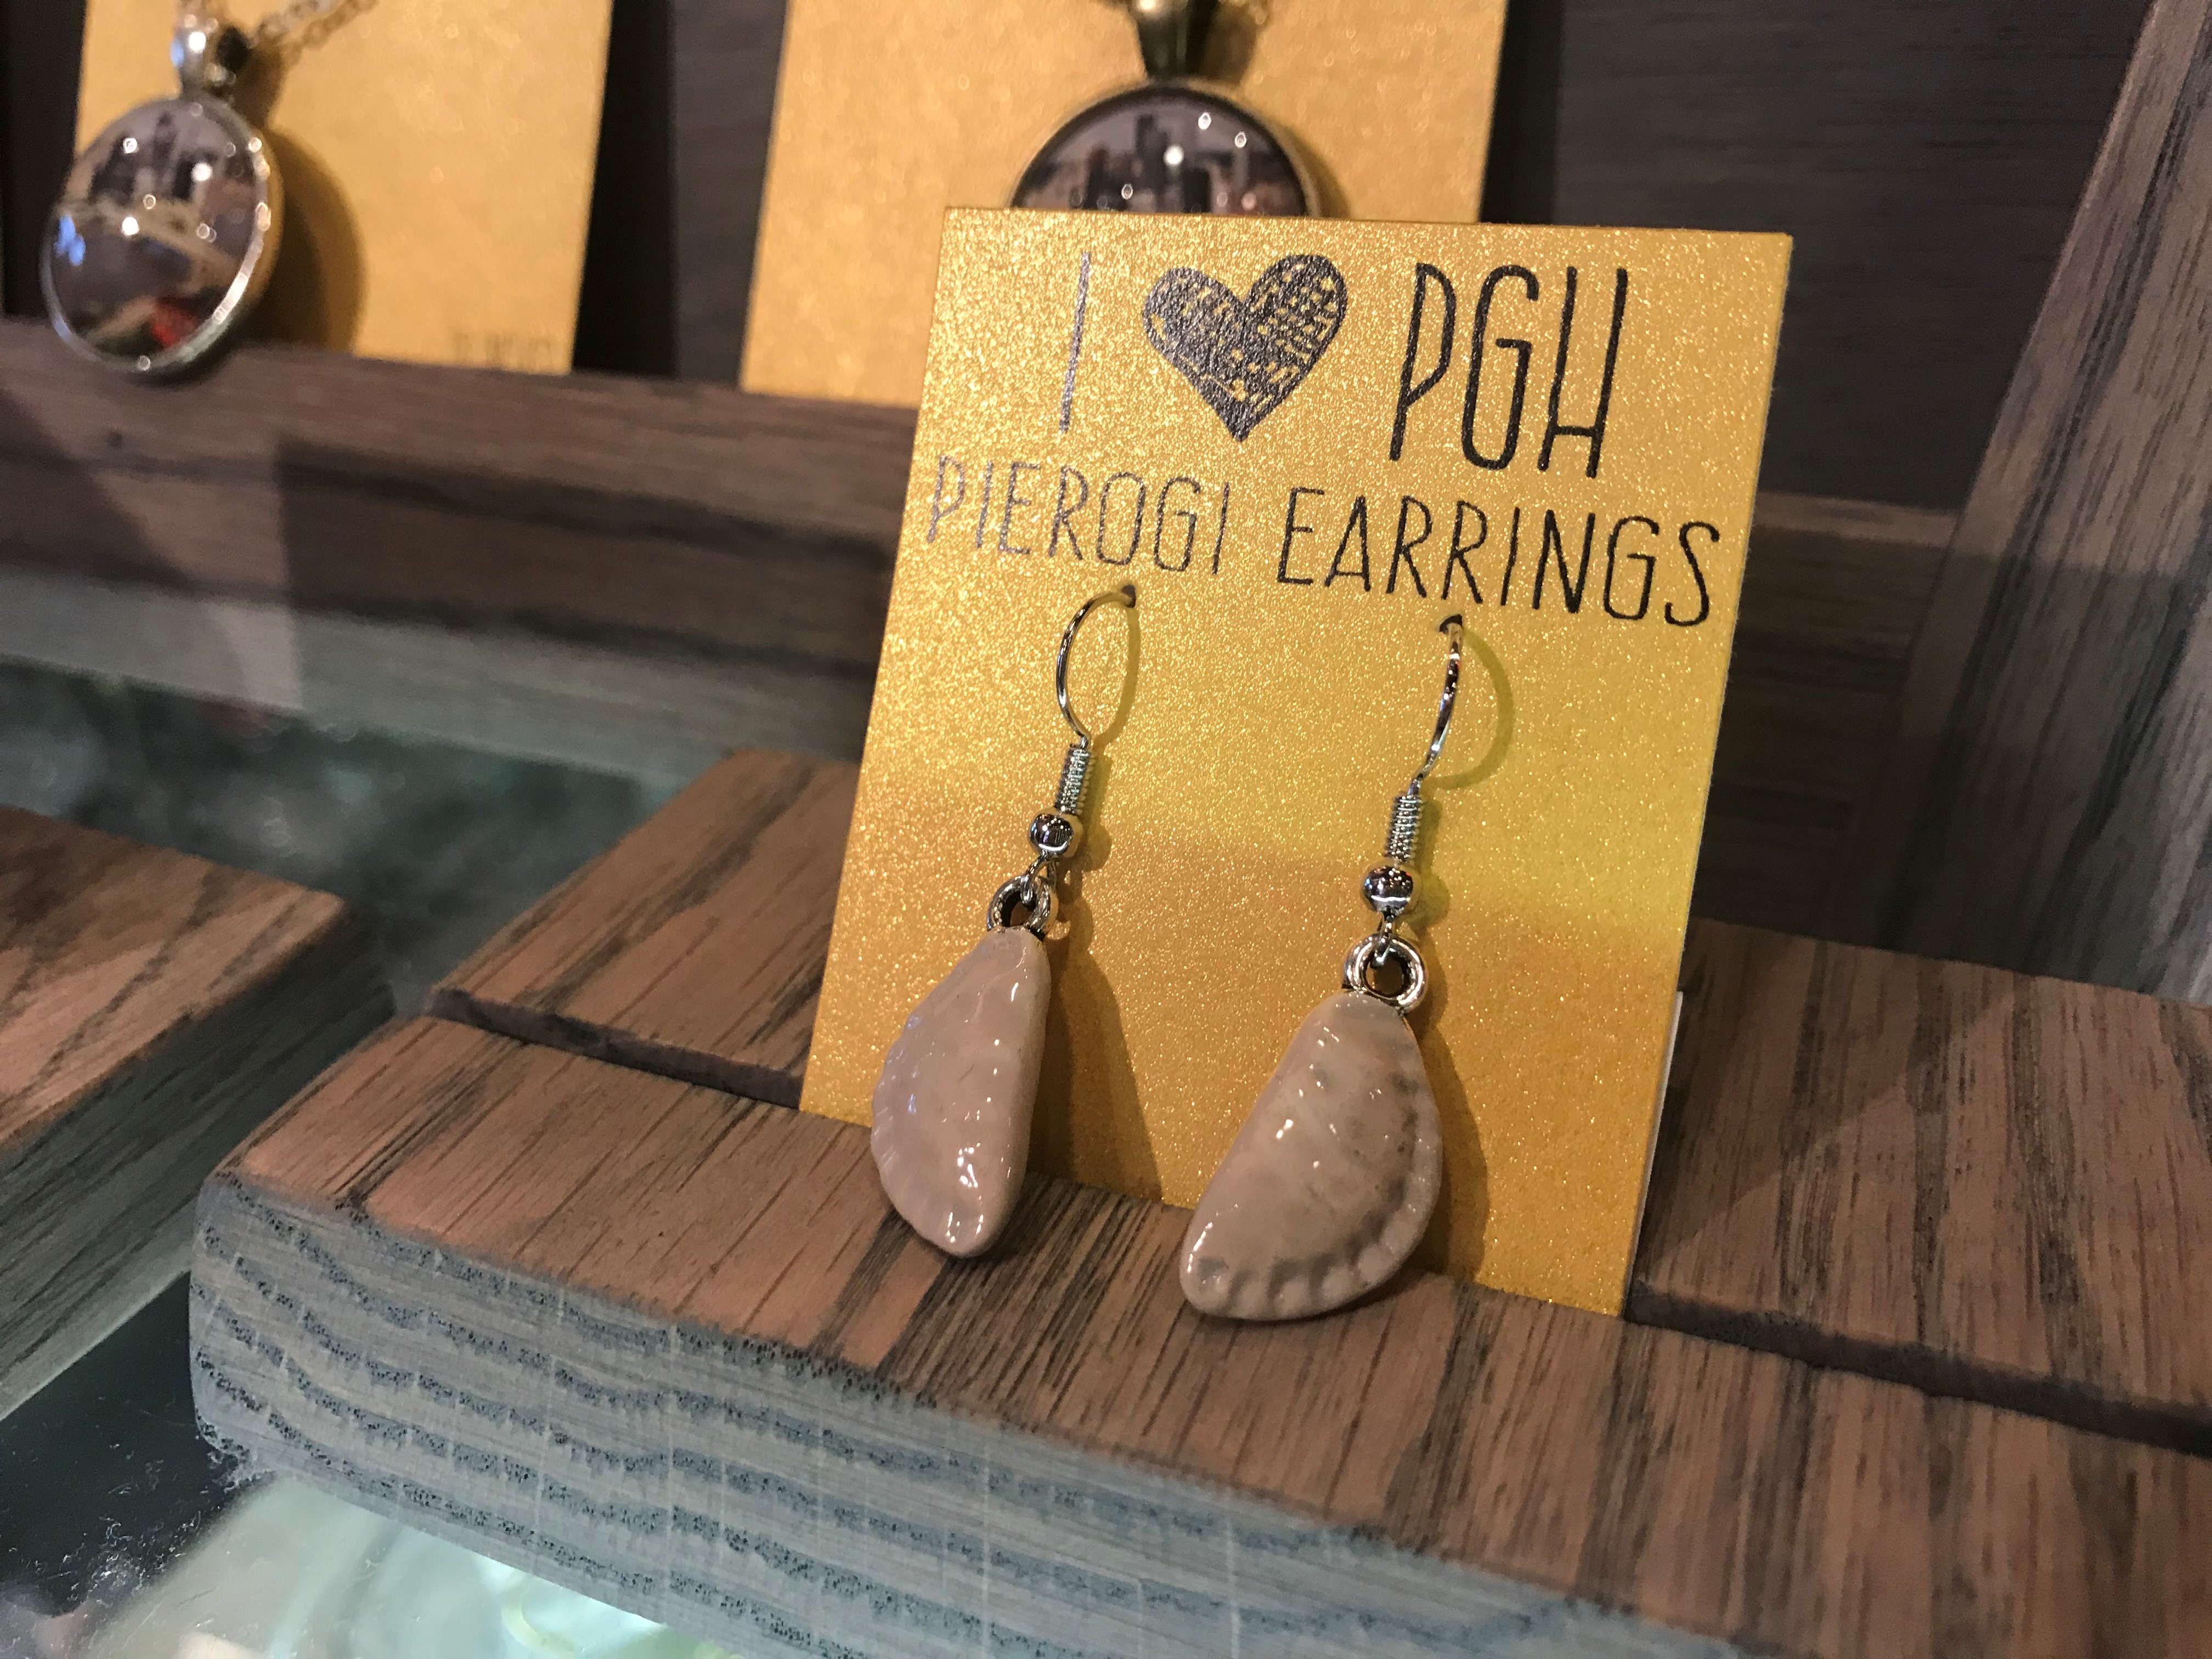 Pierogi Earrings | History Center Museum Shop